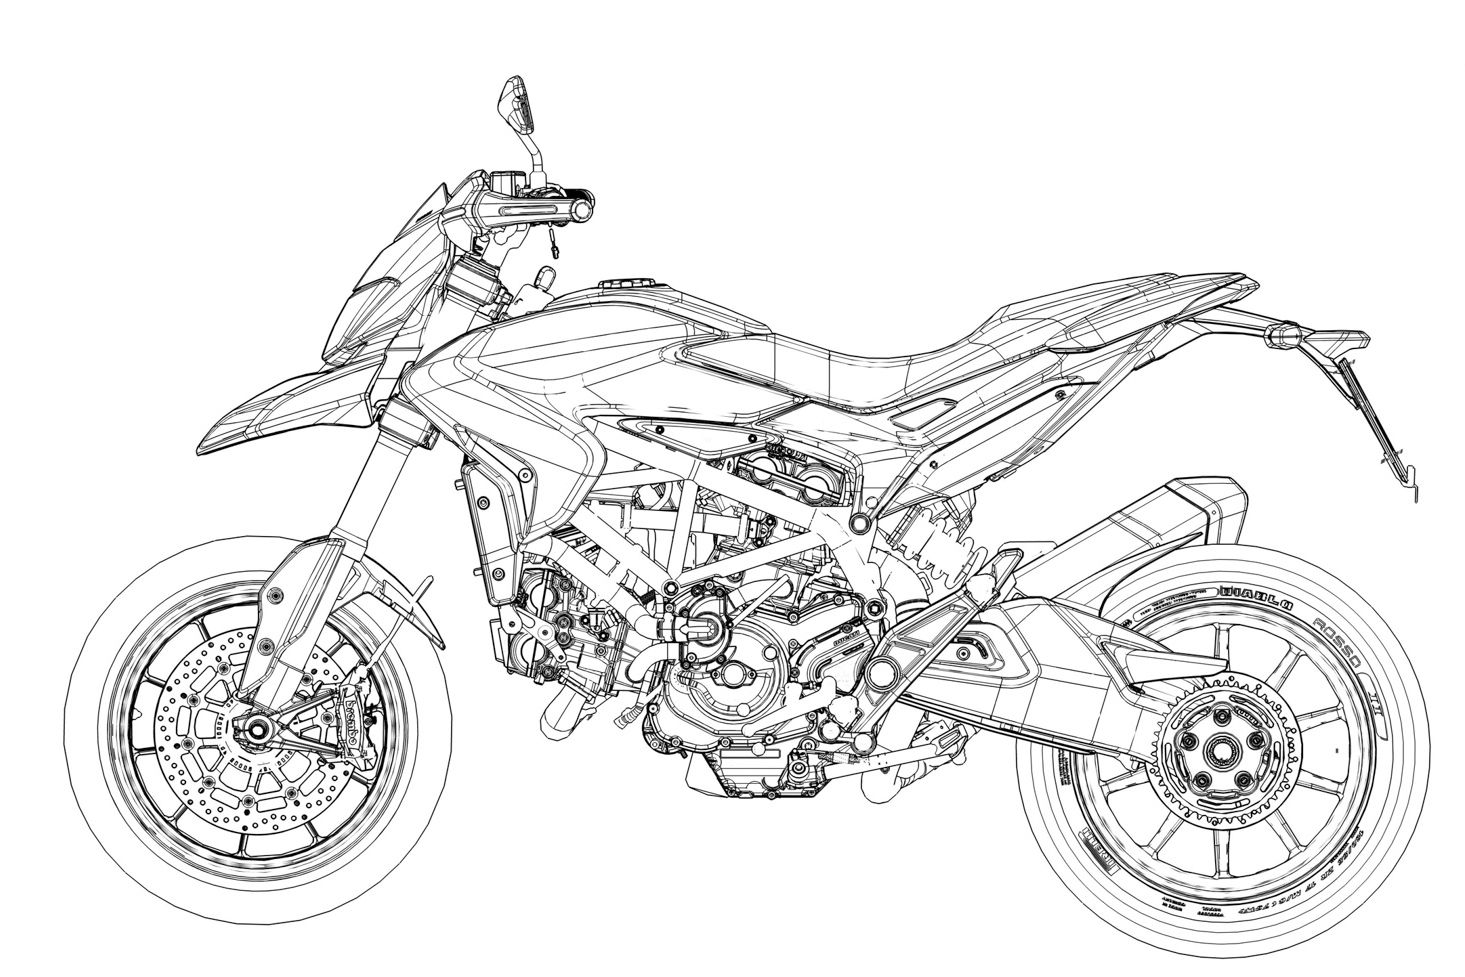 Ersatzteile Kurbelwellengehaeuse D50b0 as well Wiring Diagrams For 95 350 Yamaha Warrior as well Dirt Bike Coloring moreover Kids Flower Coloring Pages also Six Folding Electric Bikes That Fit Practically Anywhere. on moto 4 parts